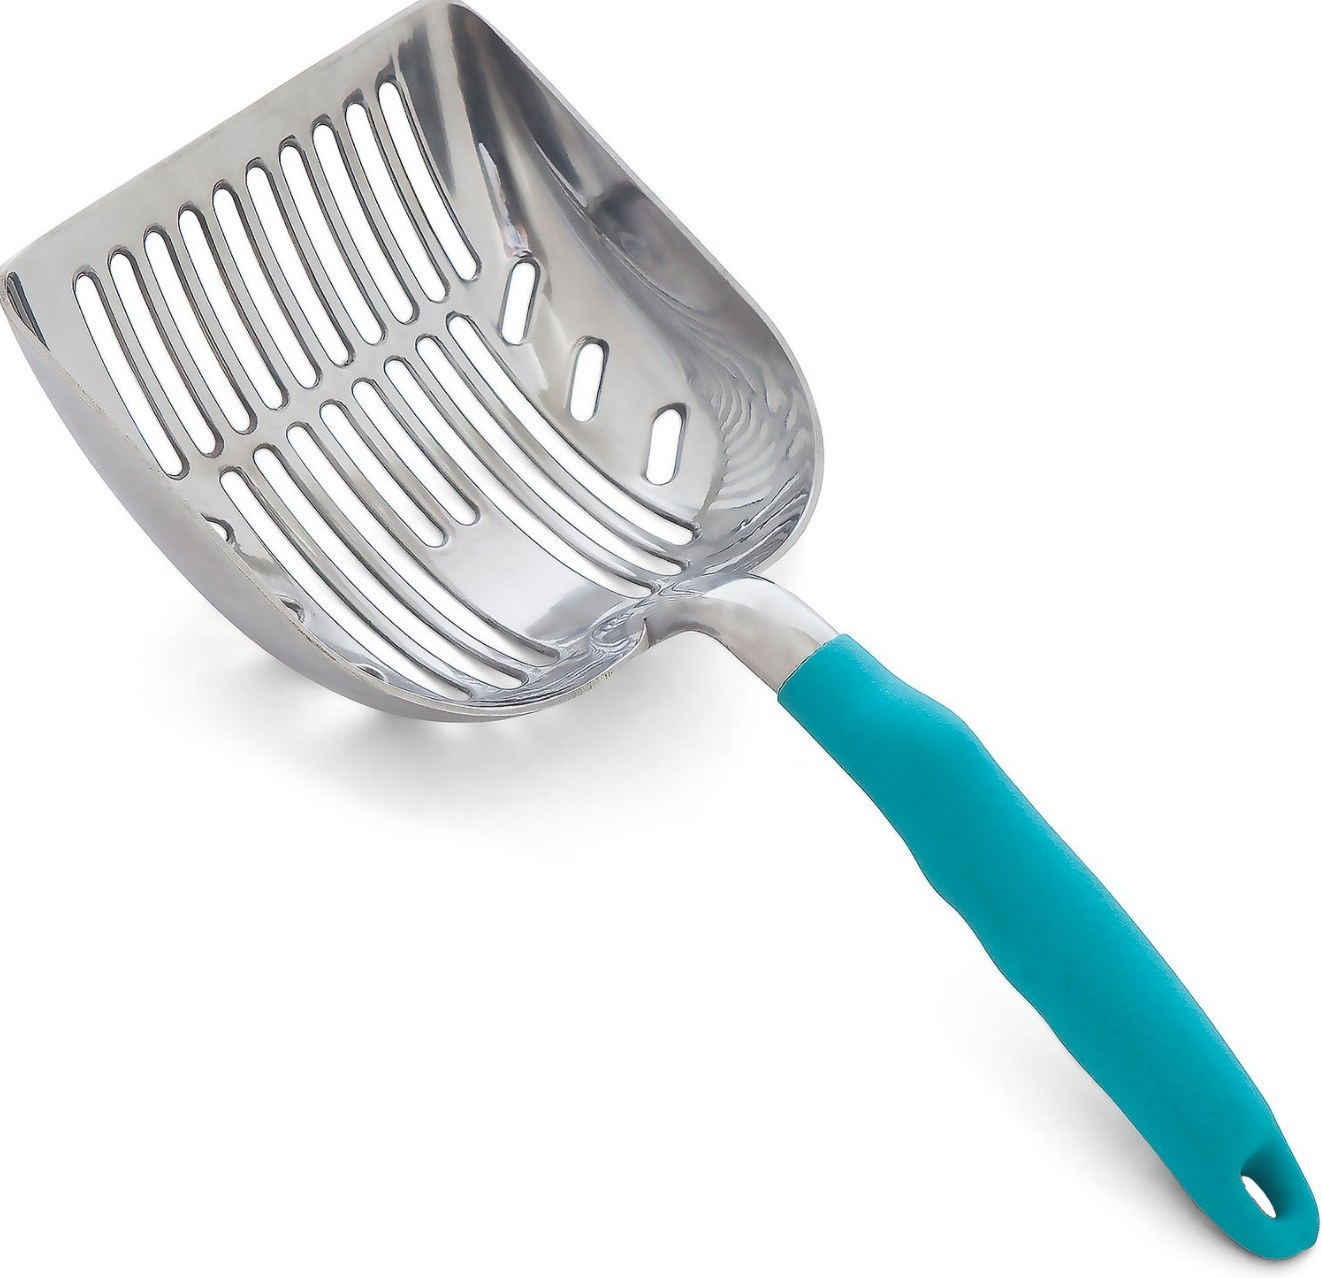 The cat litter scooper in silver with a blue handle